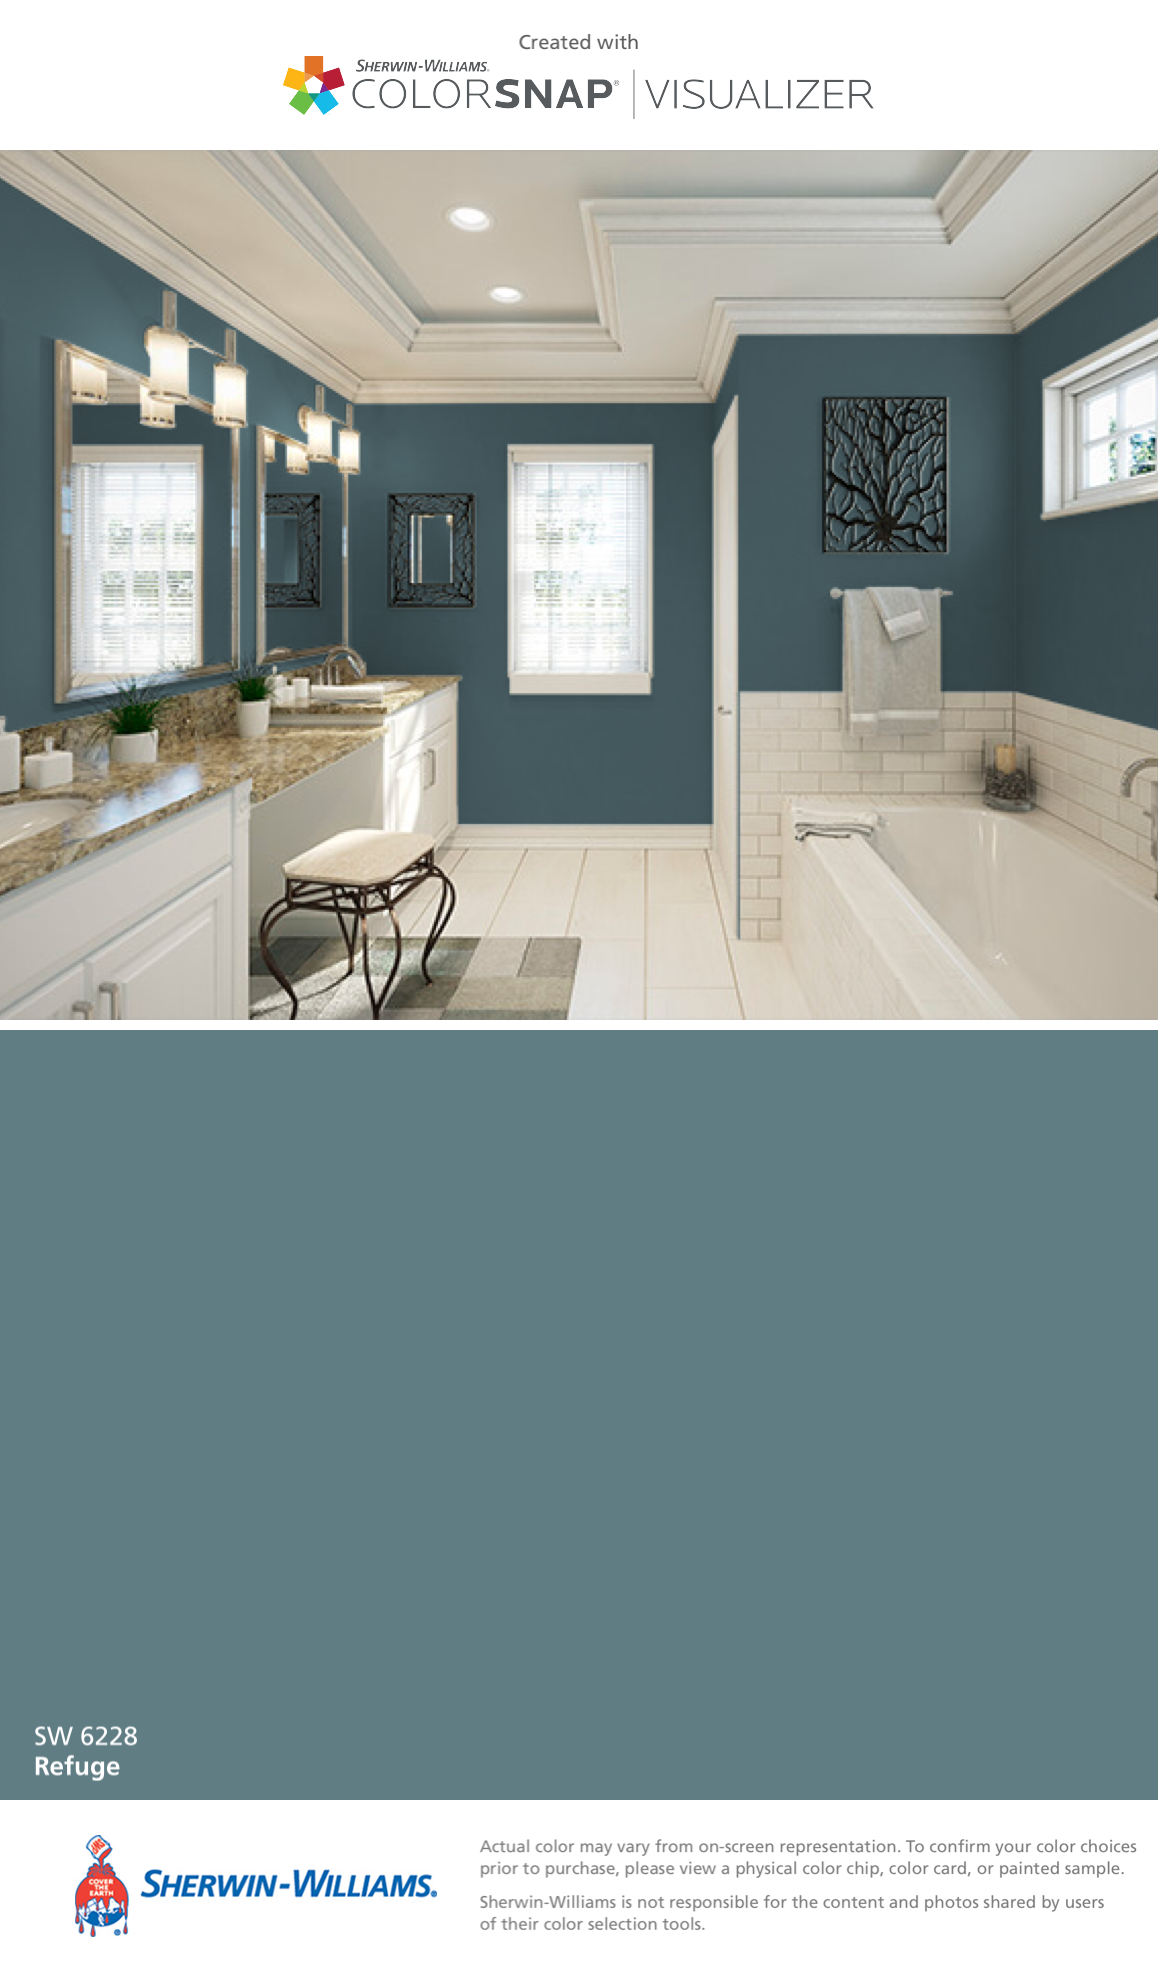 I Found This Color With ColorSnap Visualizer For IPhone By Sherwin Williams Refuge SW 6228